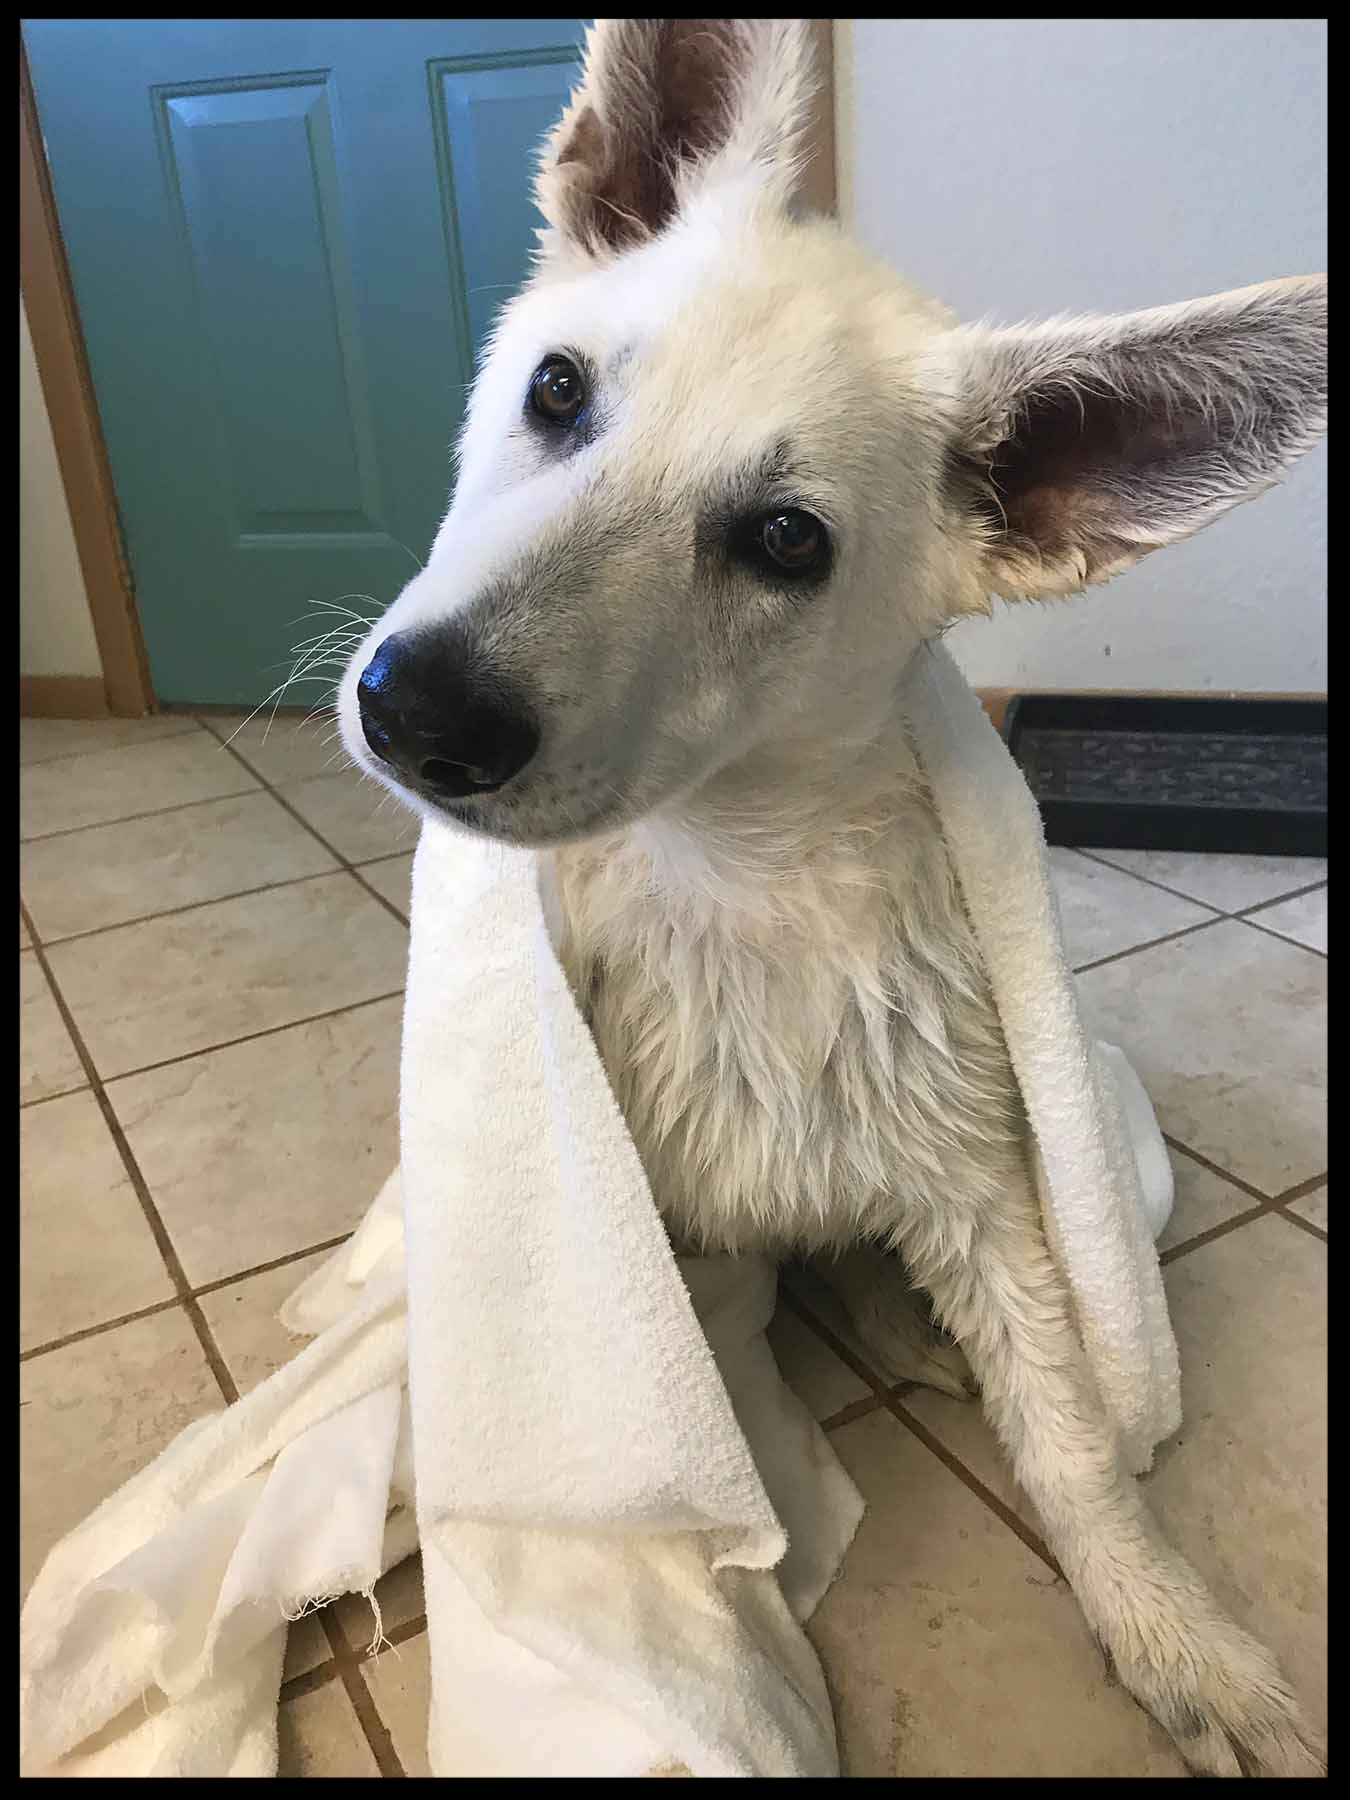 A Polarbear after Bathtime.